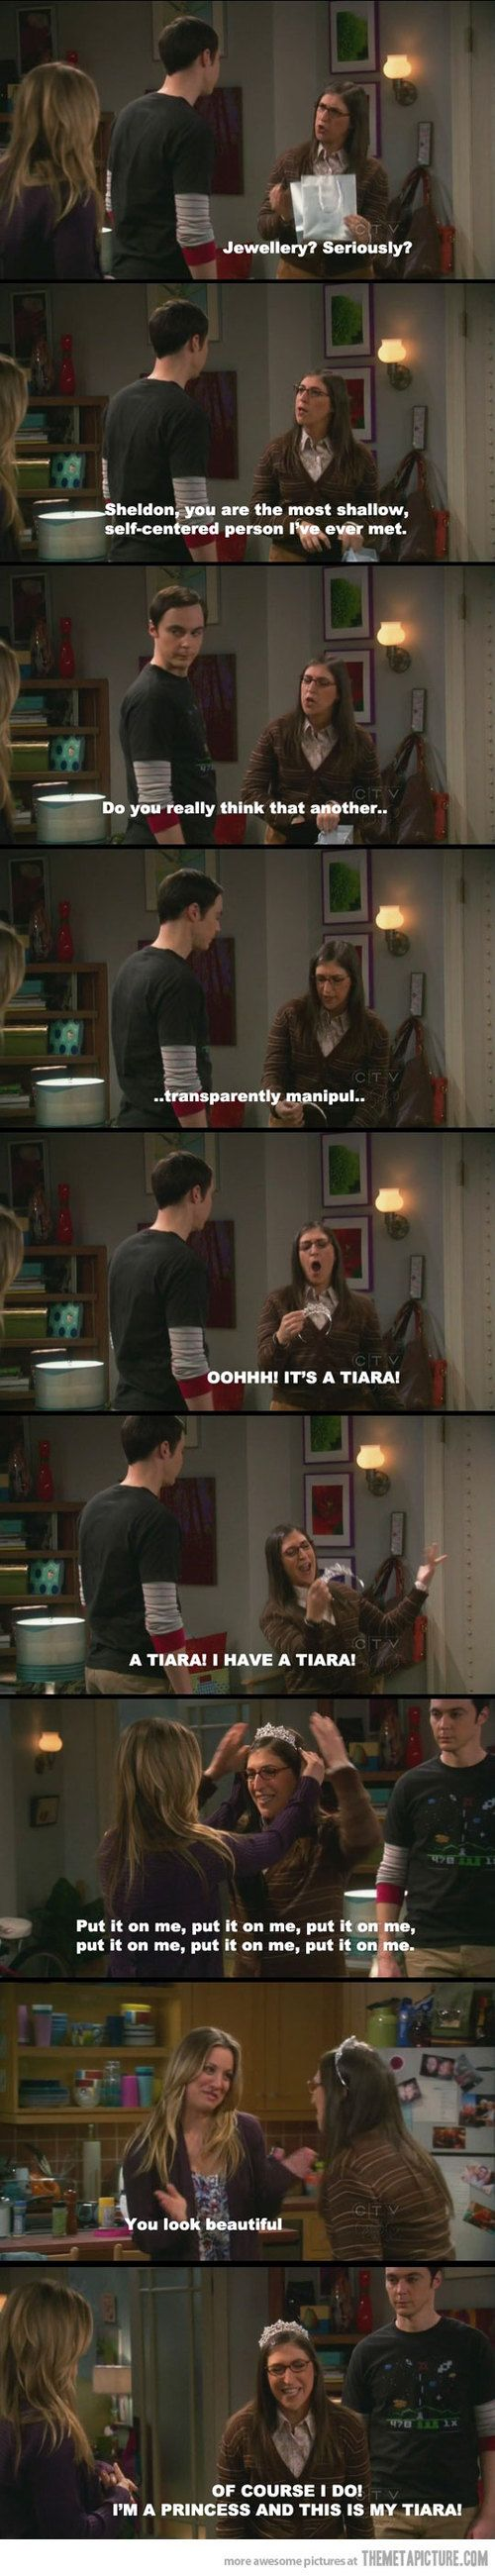 By far my favorite episode ever